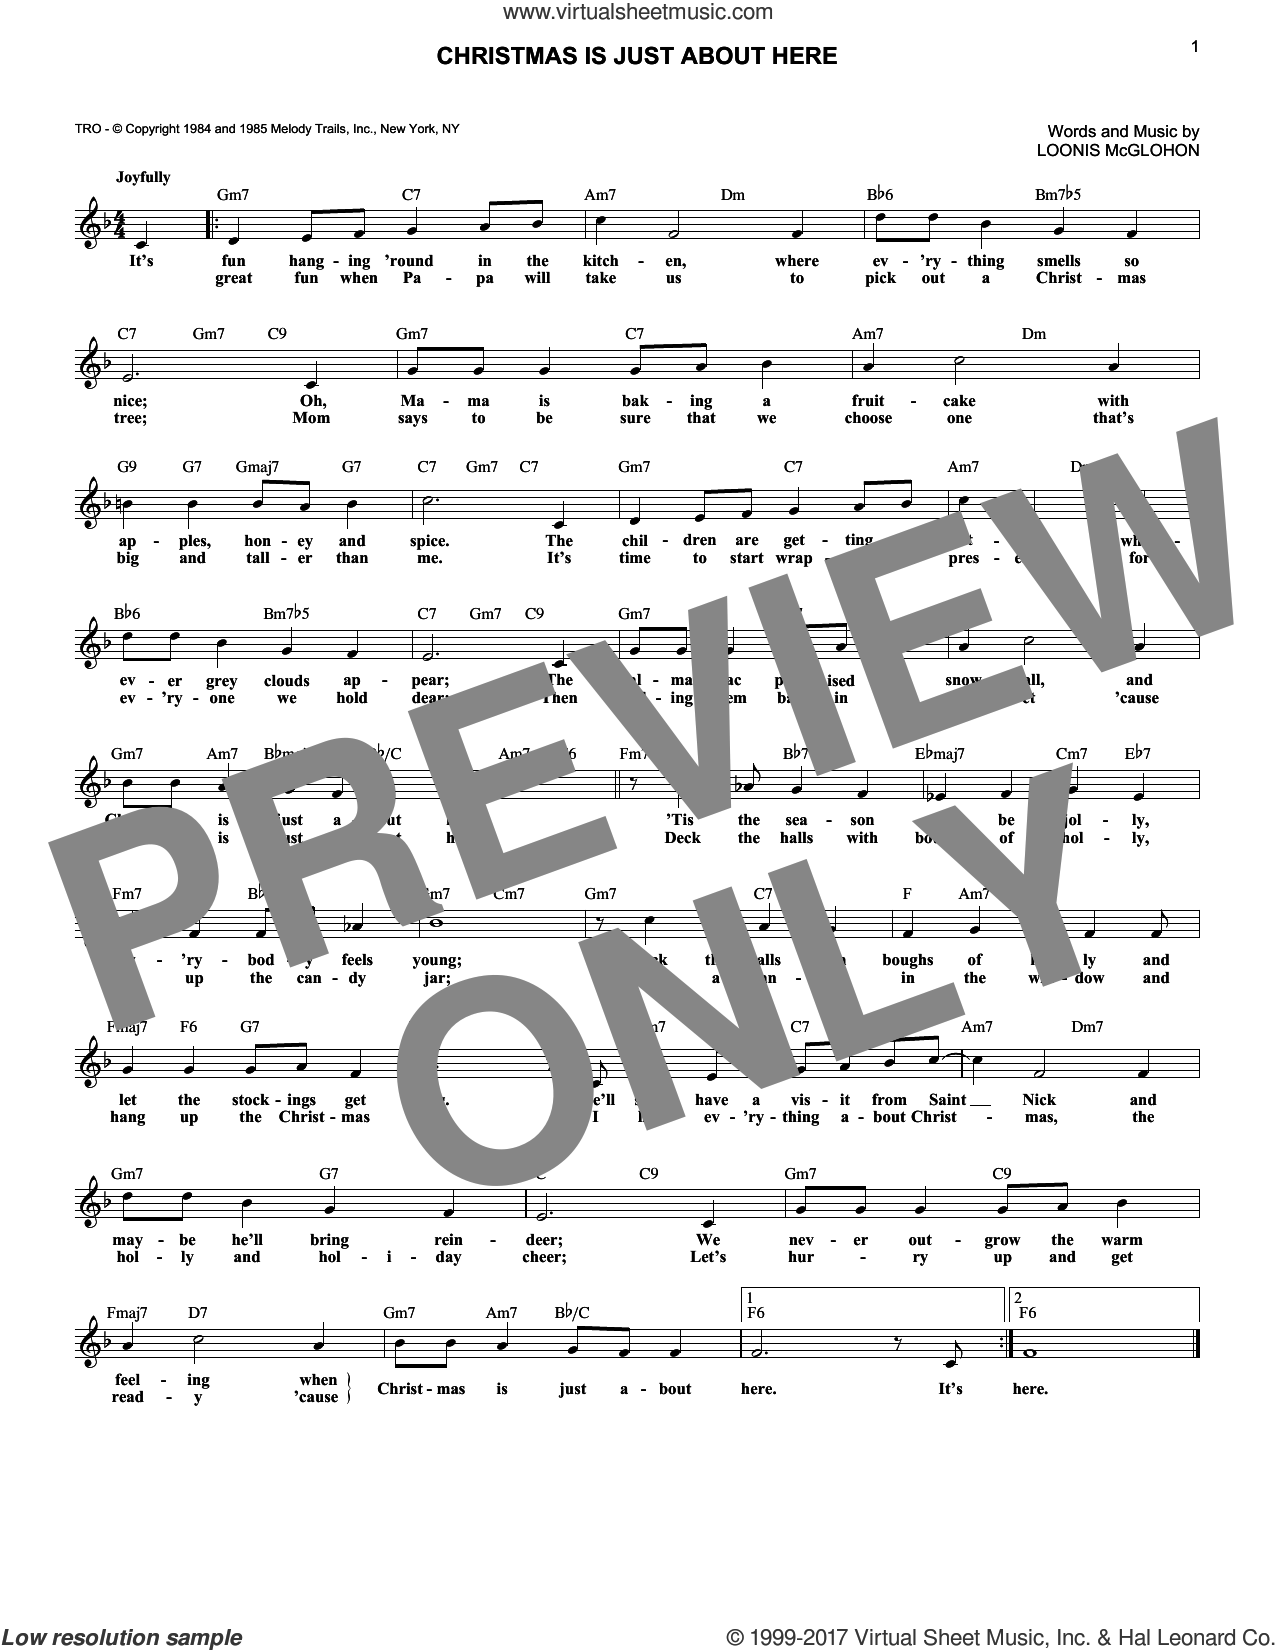 Christmas Is Just About Here sheet music for voice and other instruments (fake book) by Loonis McGlohon, intermediate skill level